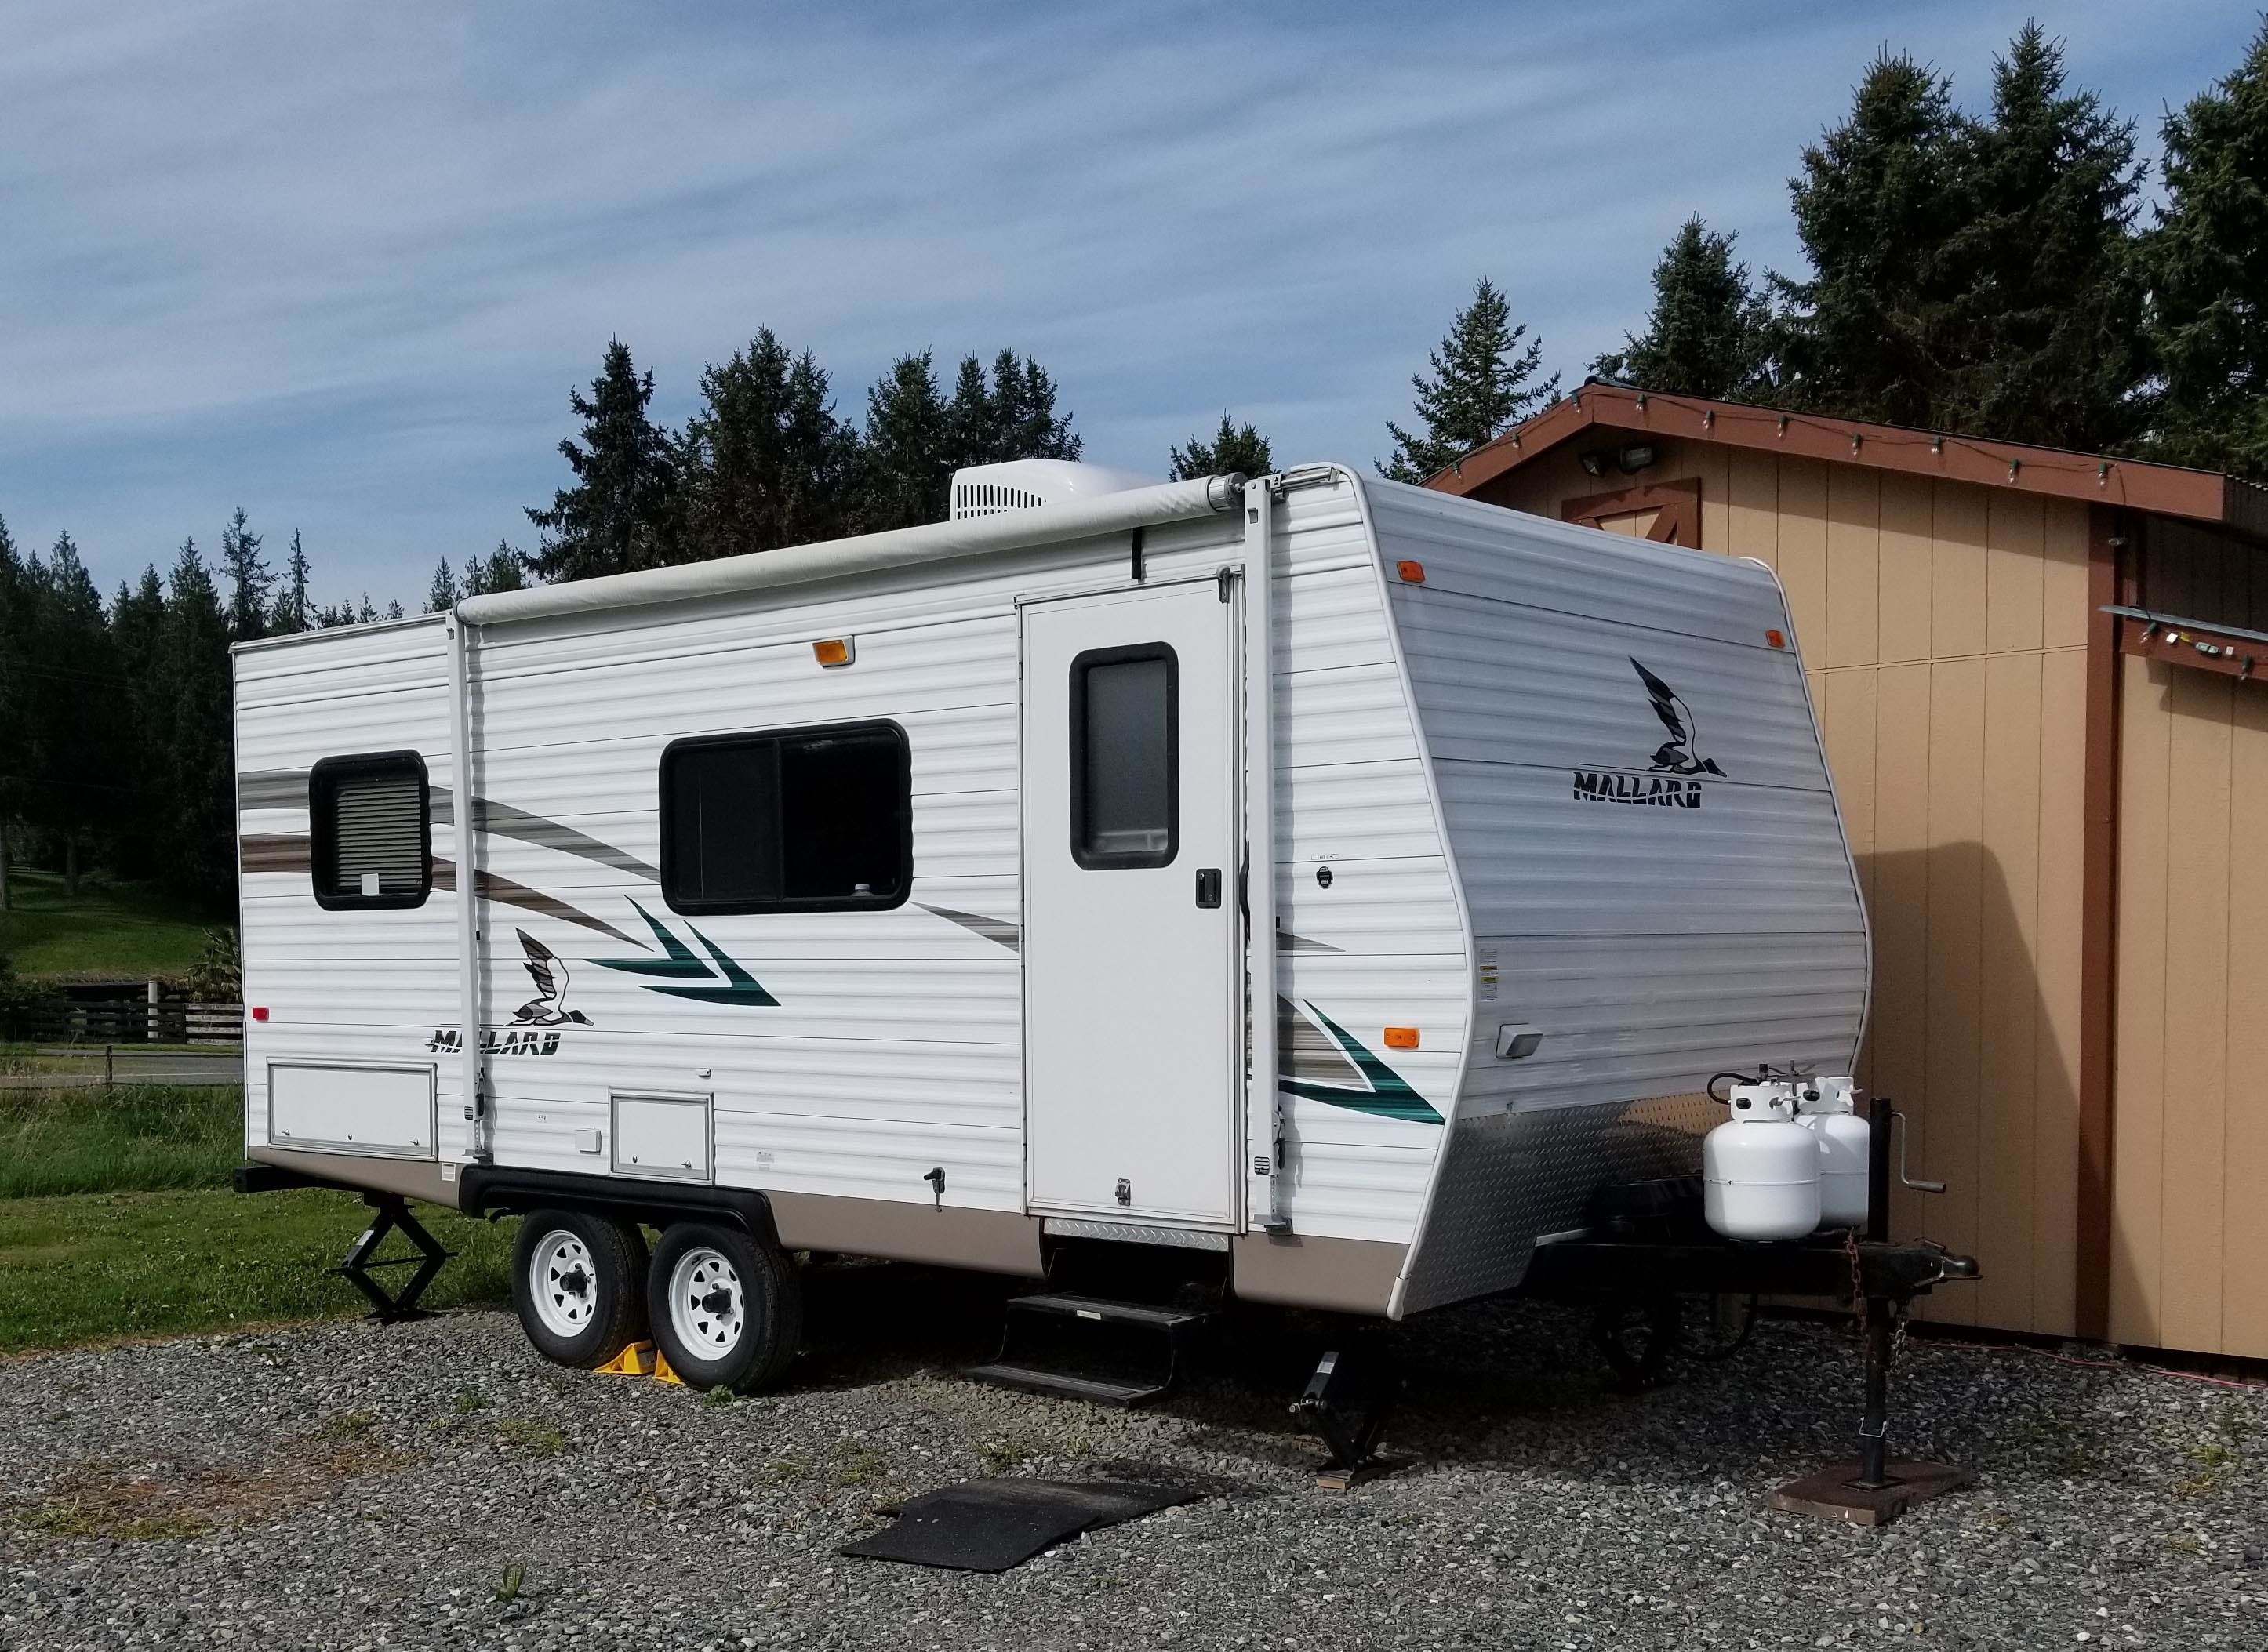 Fleetwood MALLARD 24RKS REAR KITCHEN/ For Sale - Fleetwood RVs -  RvTrader.com